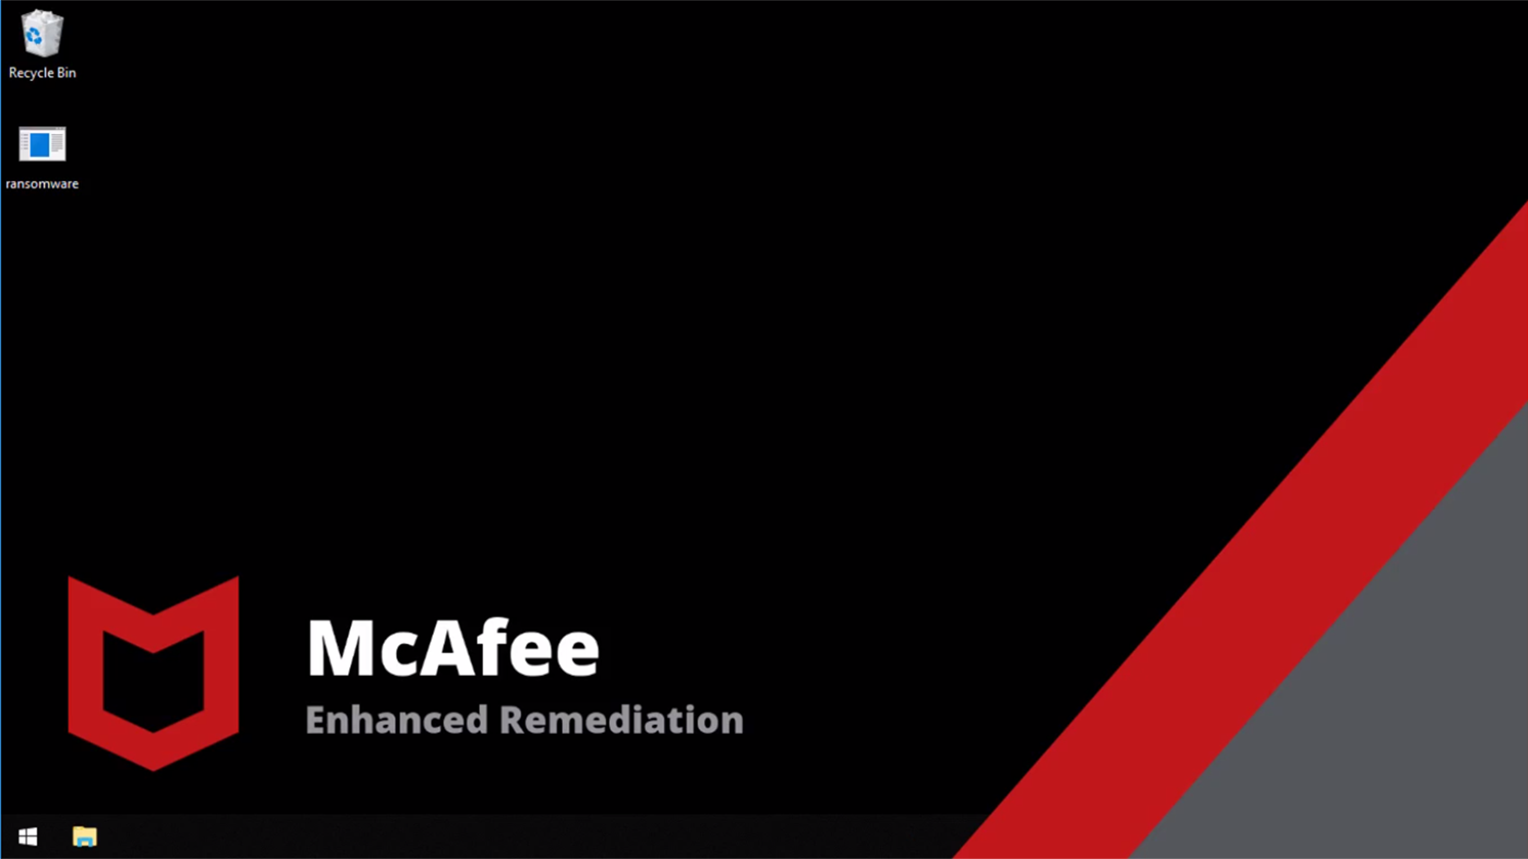 Watch McAfee enhanced remediation video